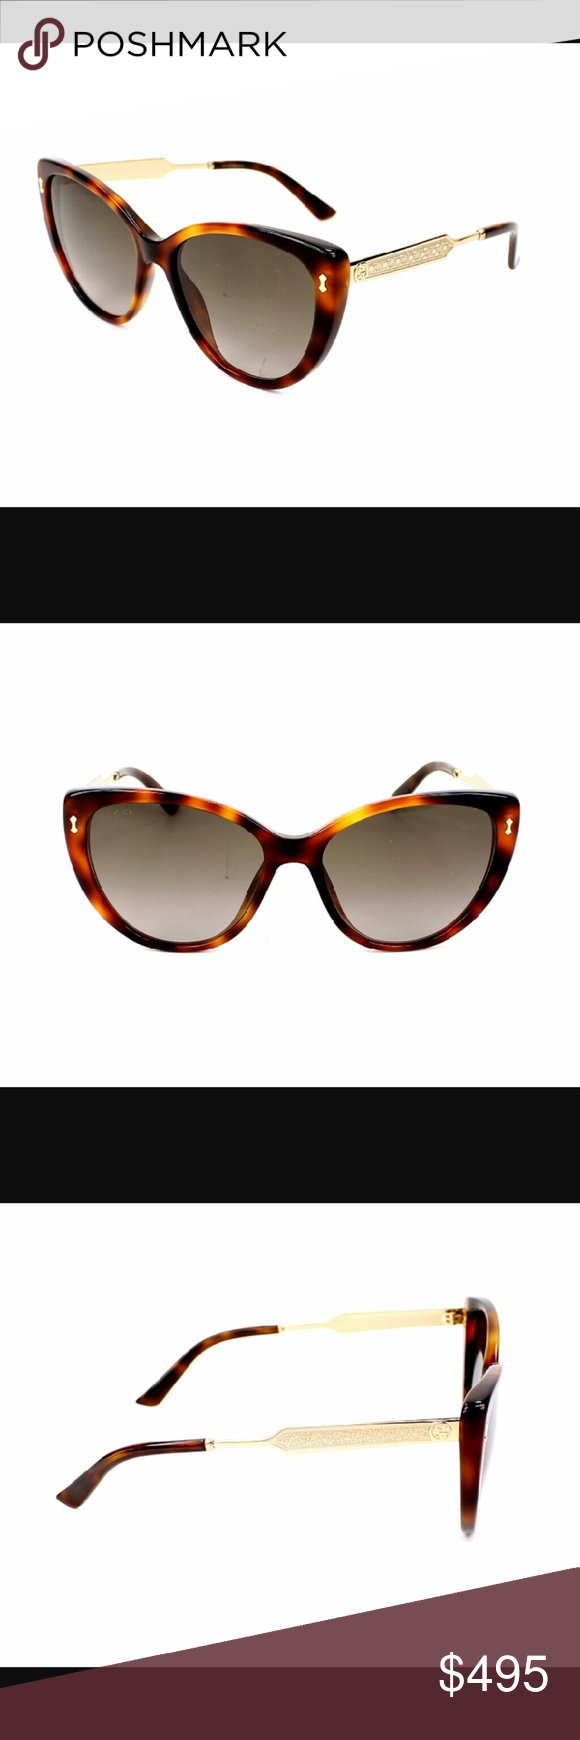 Gucci sunglasses Beautiful brand new from their summer 2016collection these plastic tortoise shell cat eye frames with gold temples that have great attention to detail on them. Classy and stylish this kind of frame will never go out of style! Brand new never worn Comes with authentic case cleaning cloth and proof of authenticity Gucci Accessories Glasses